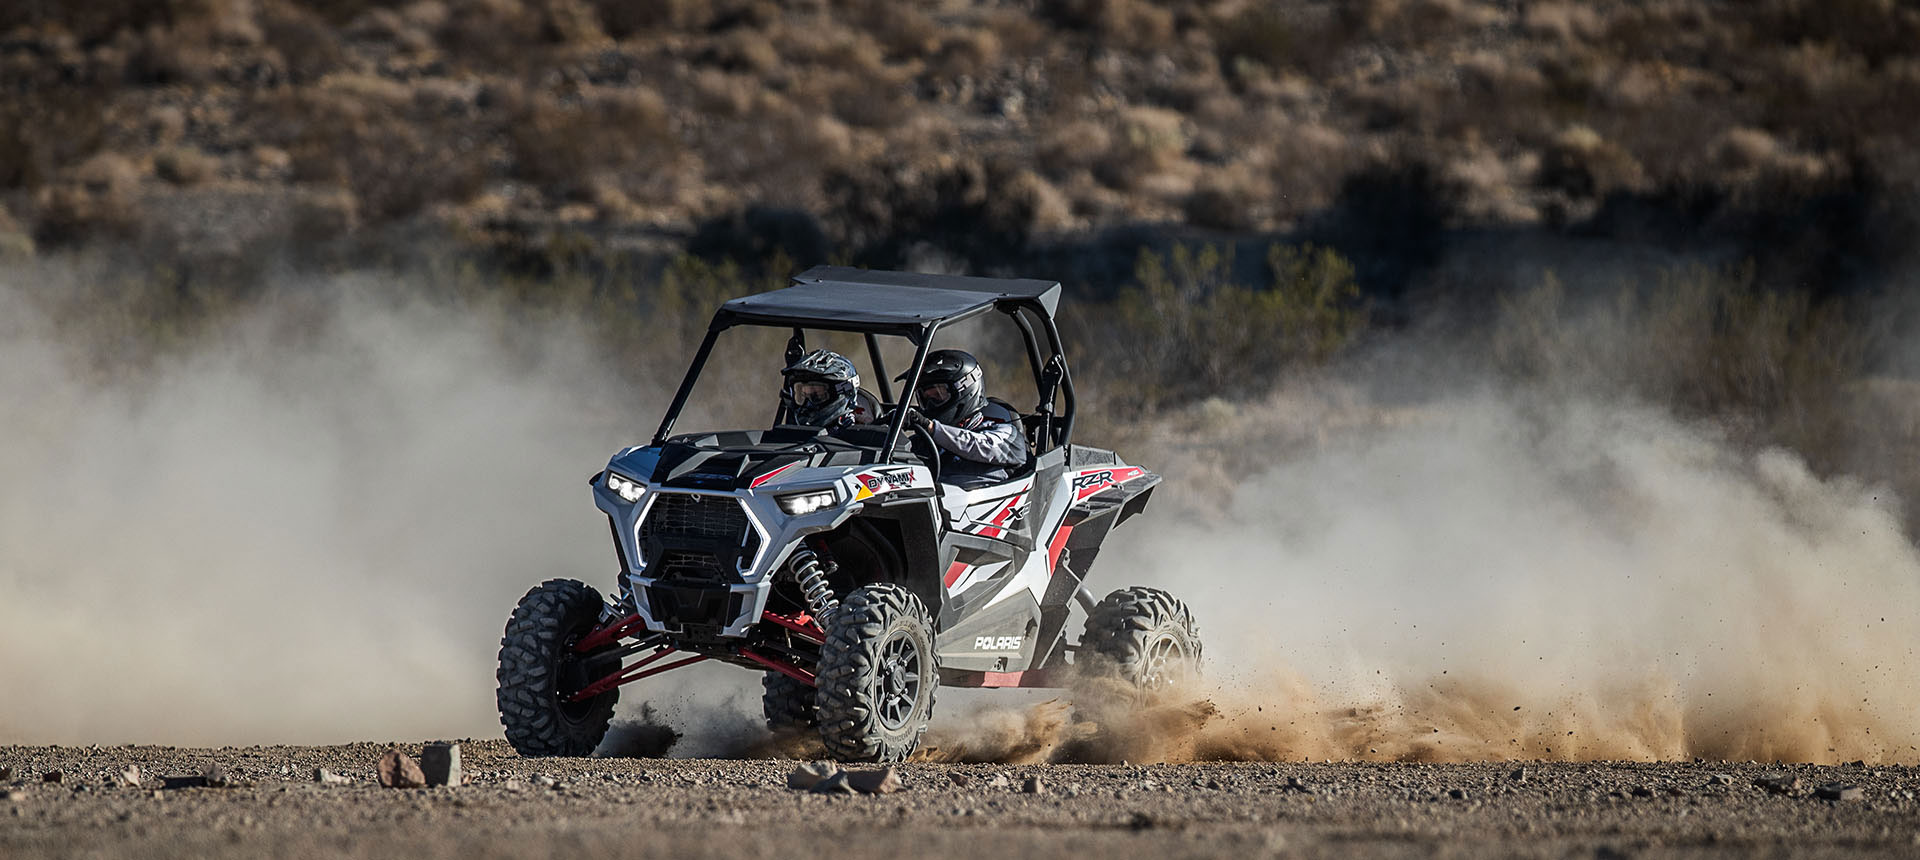 2019 Polaris RZR XP 1000 in Afton, Oklahoma - Photo 2